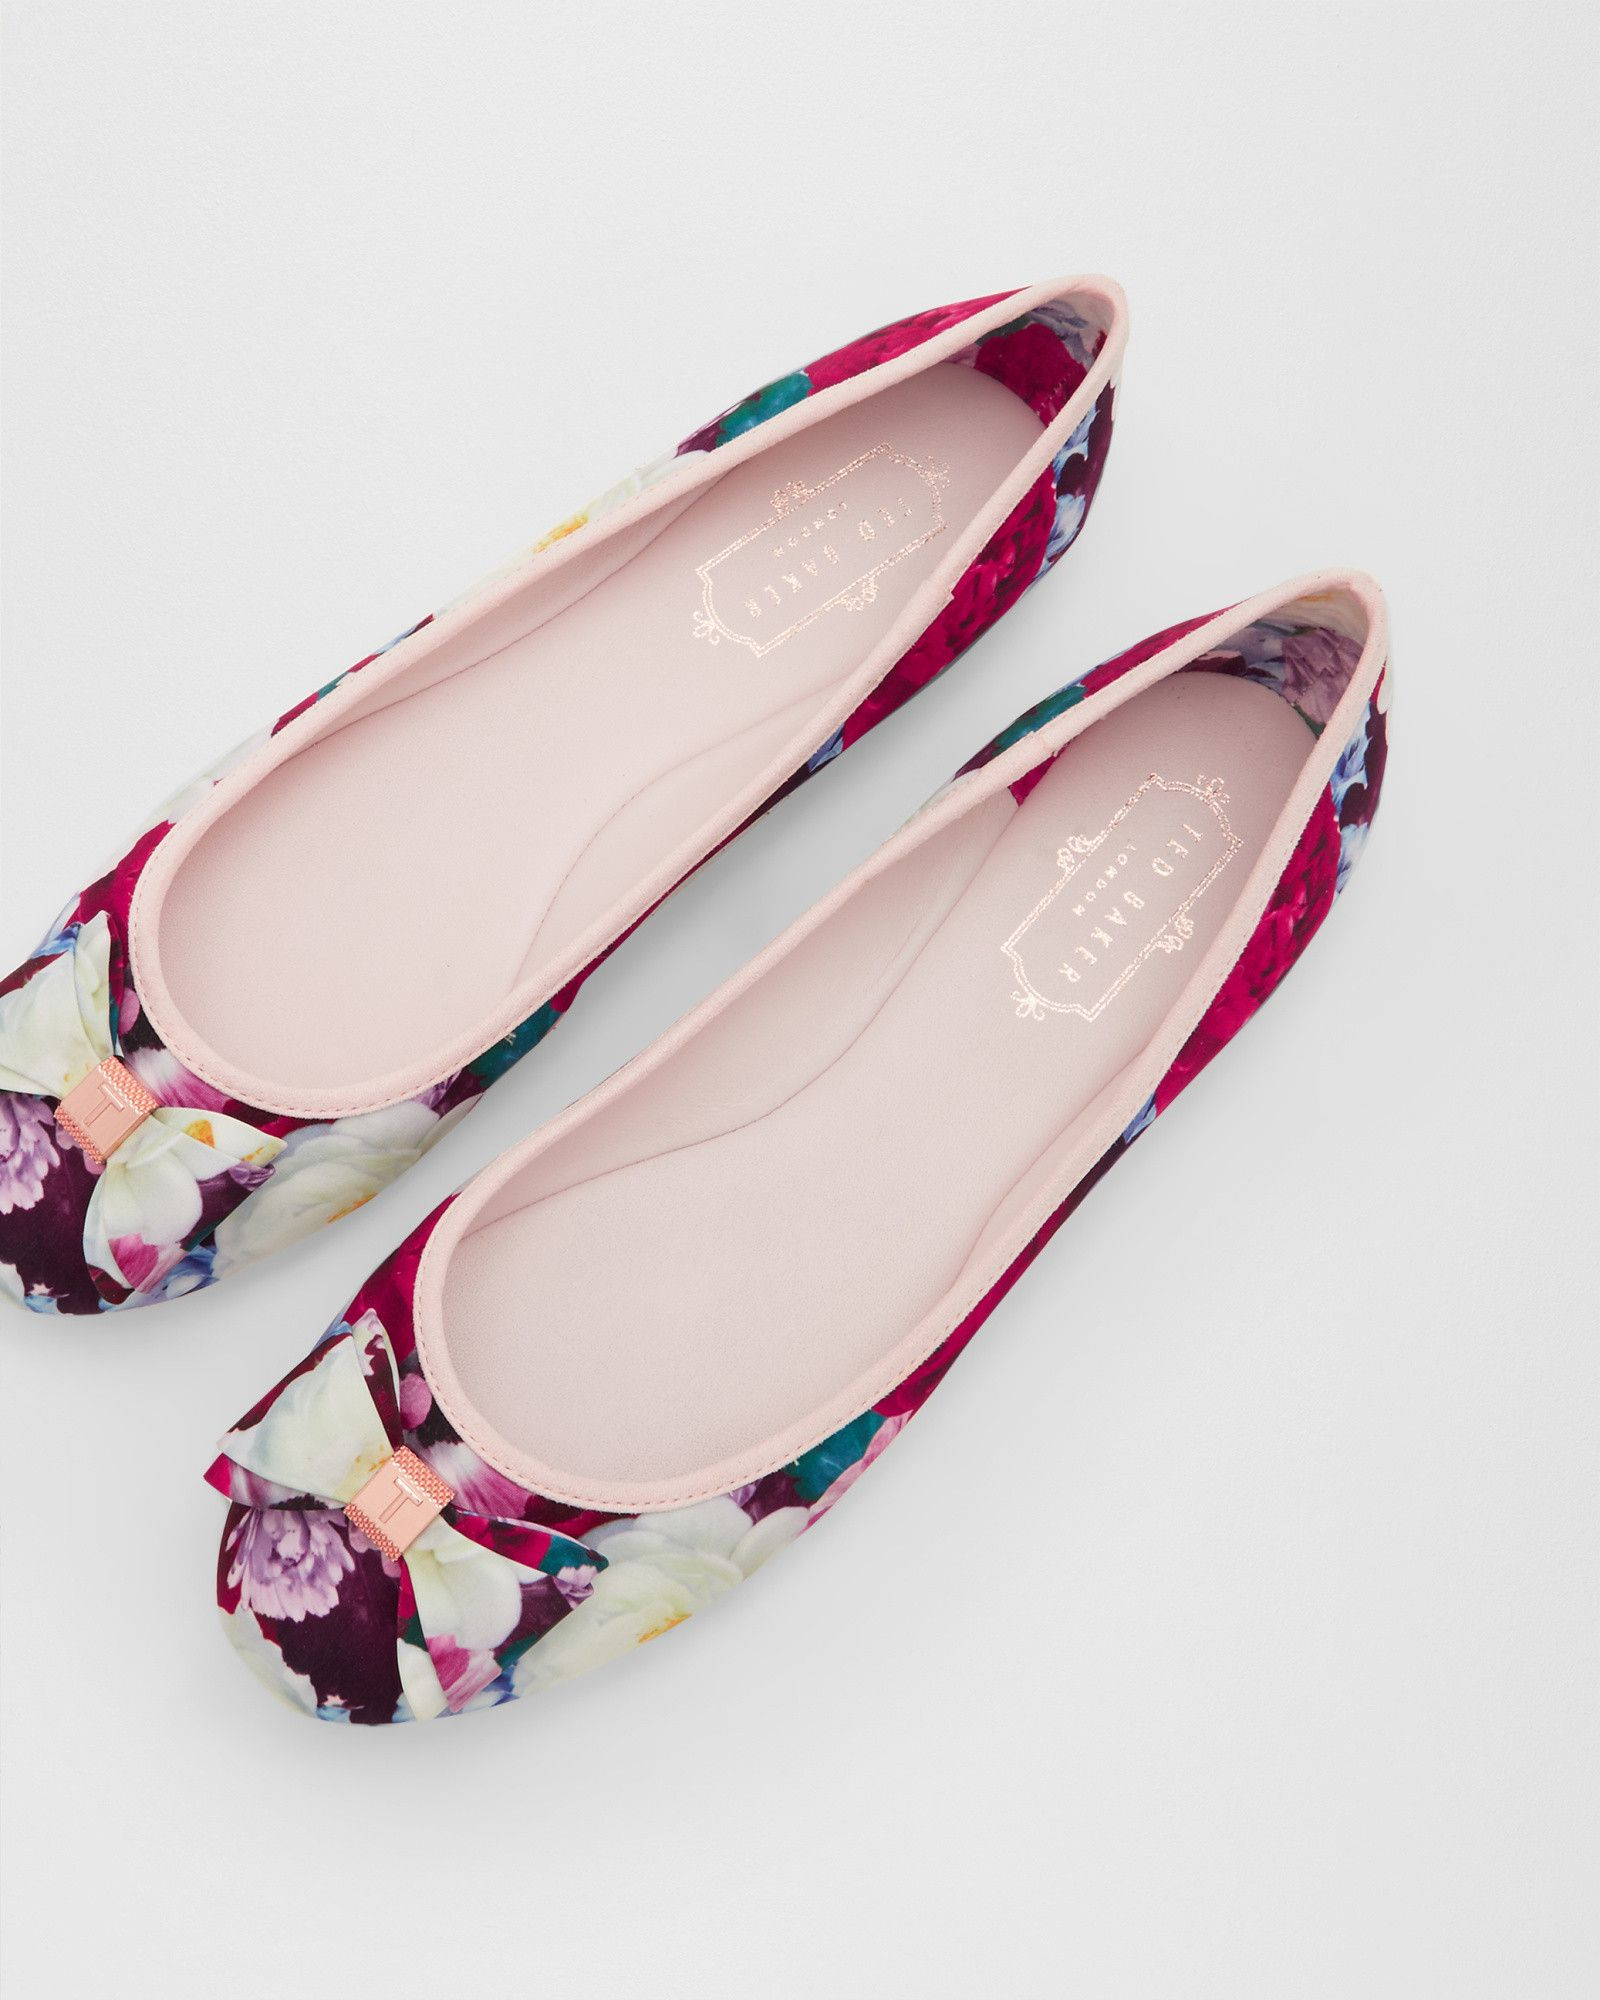 097e49dfb9290 Shop women's British fashion from luxury dresses, jackets, tops, bags and  more. PRINTED FLAT BALLET PUMP - Deep Pink ...